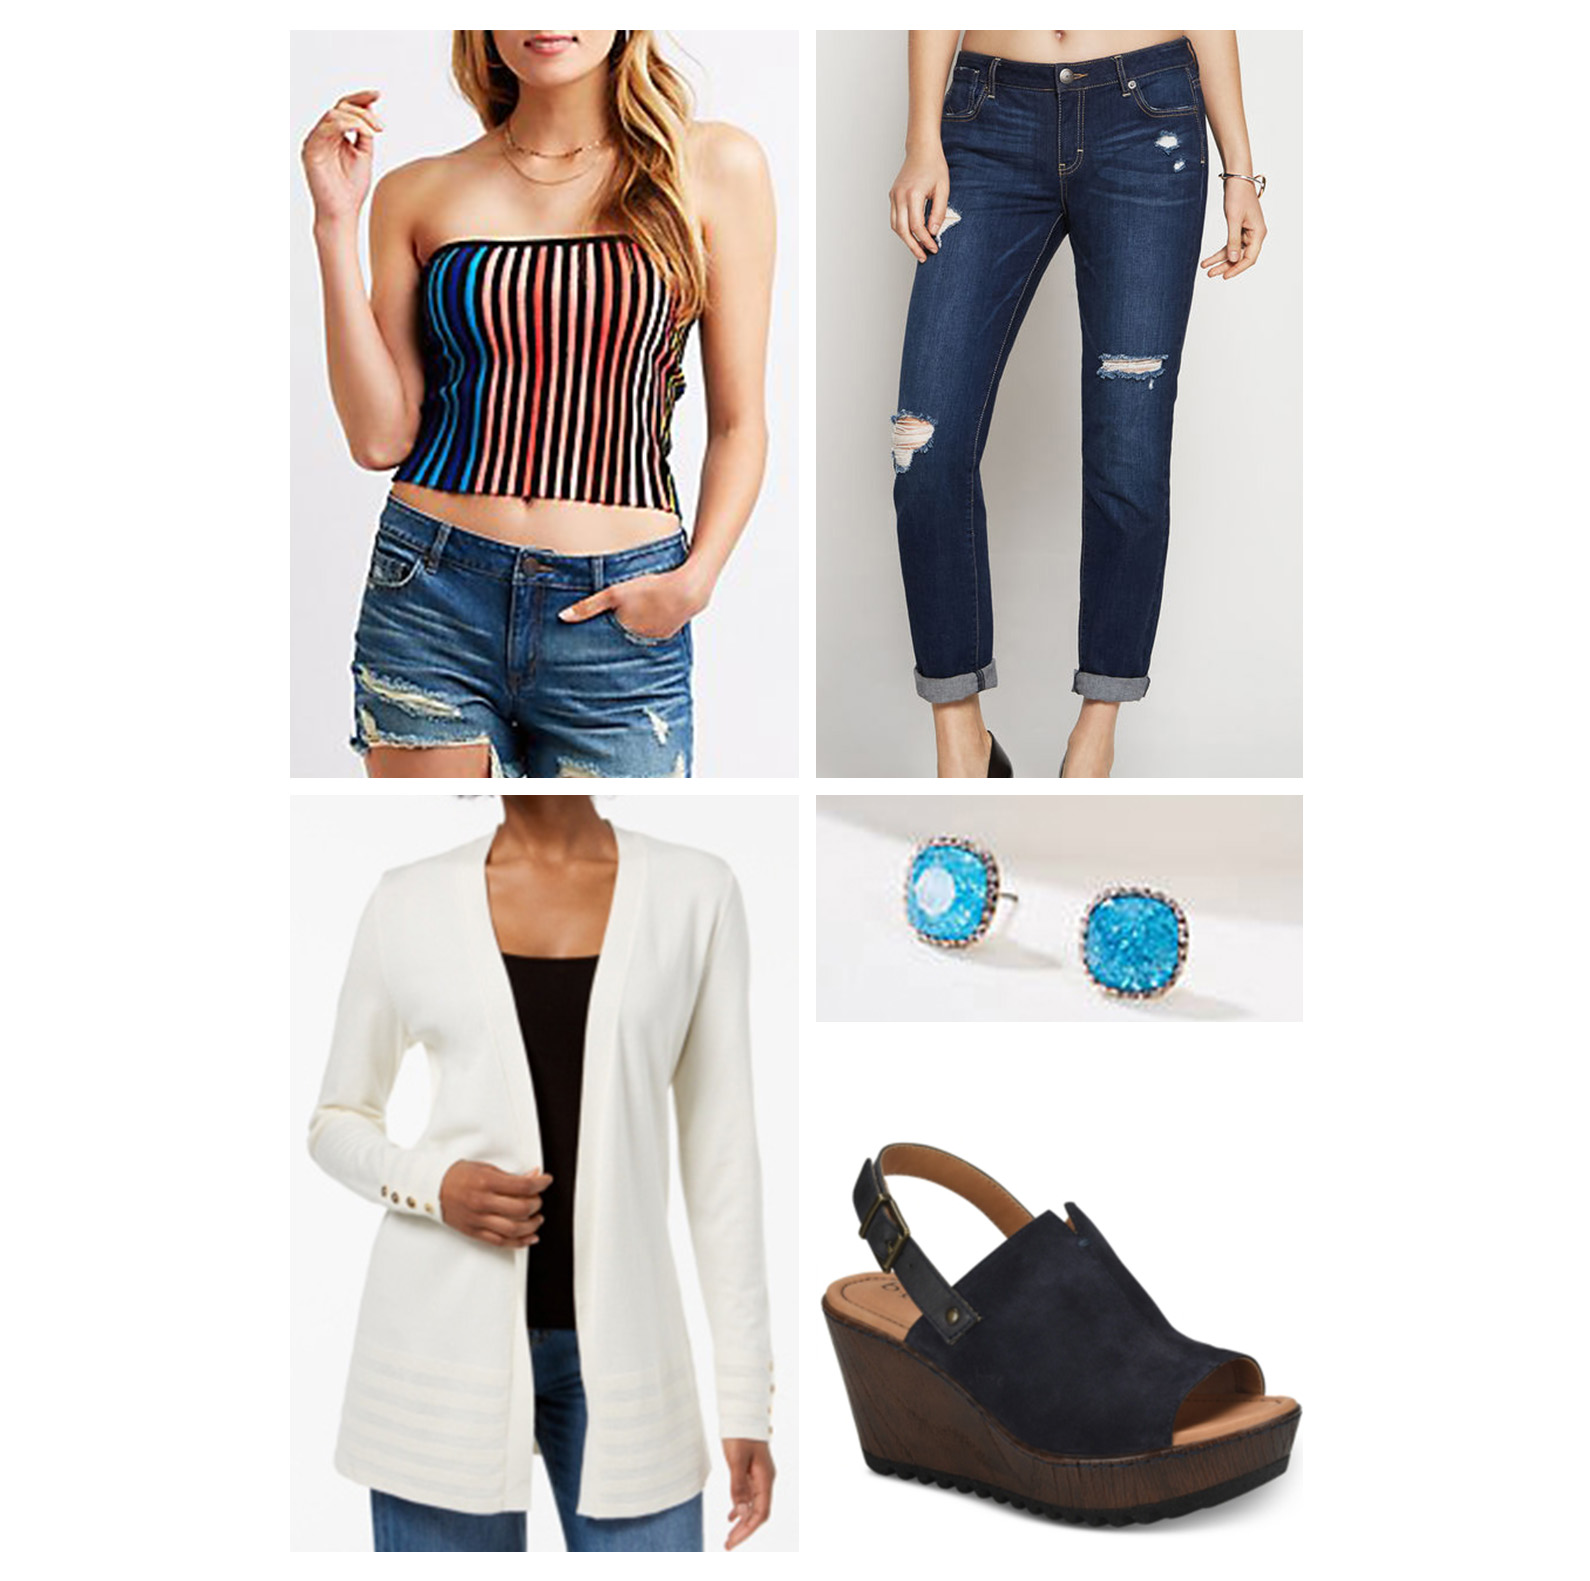 weekend-outfit-jeans-tube-top-striped-wedges-blue-studs-white-cardigan.jpg